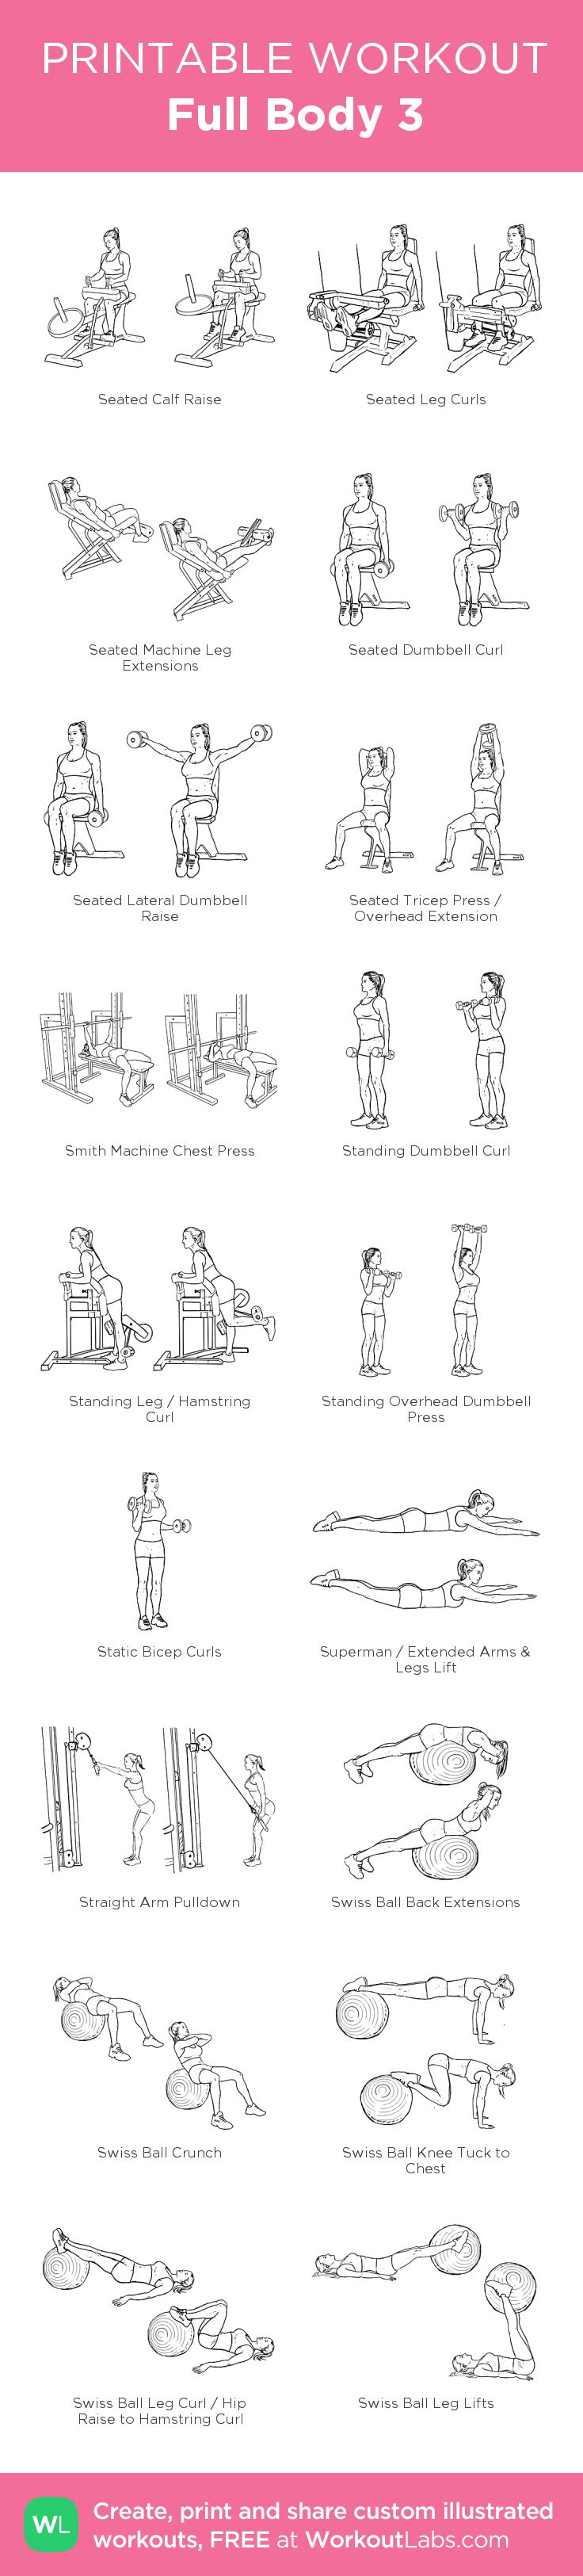 Full Body 3: my visual workout created at WorkoutLabs.com • Click through to customize and download as a FREE PDF! #customworkout